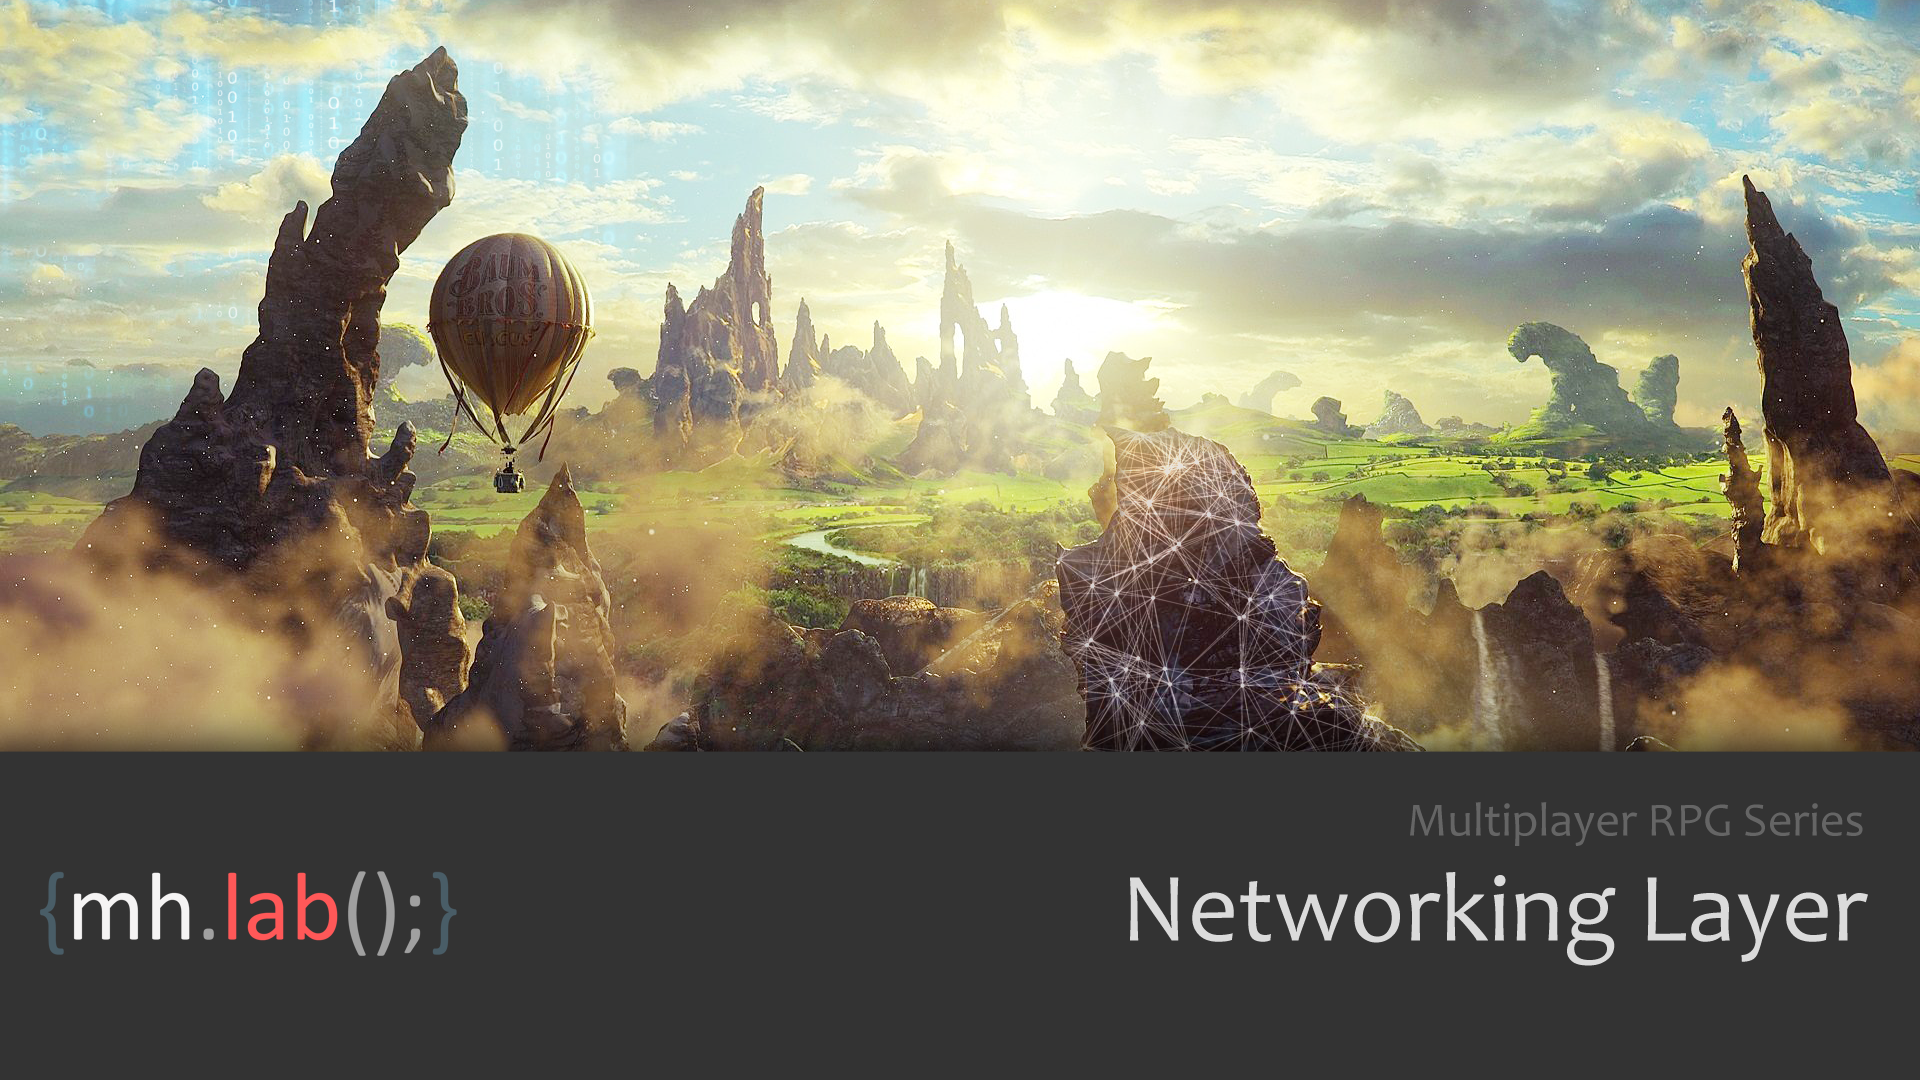 Multiplayer RPG Series - Networking (TCP vs UDP) | mhlab